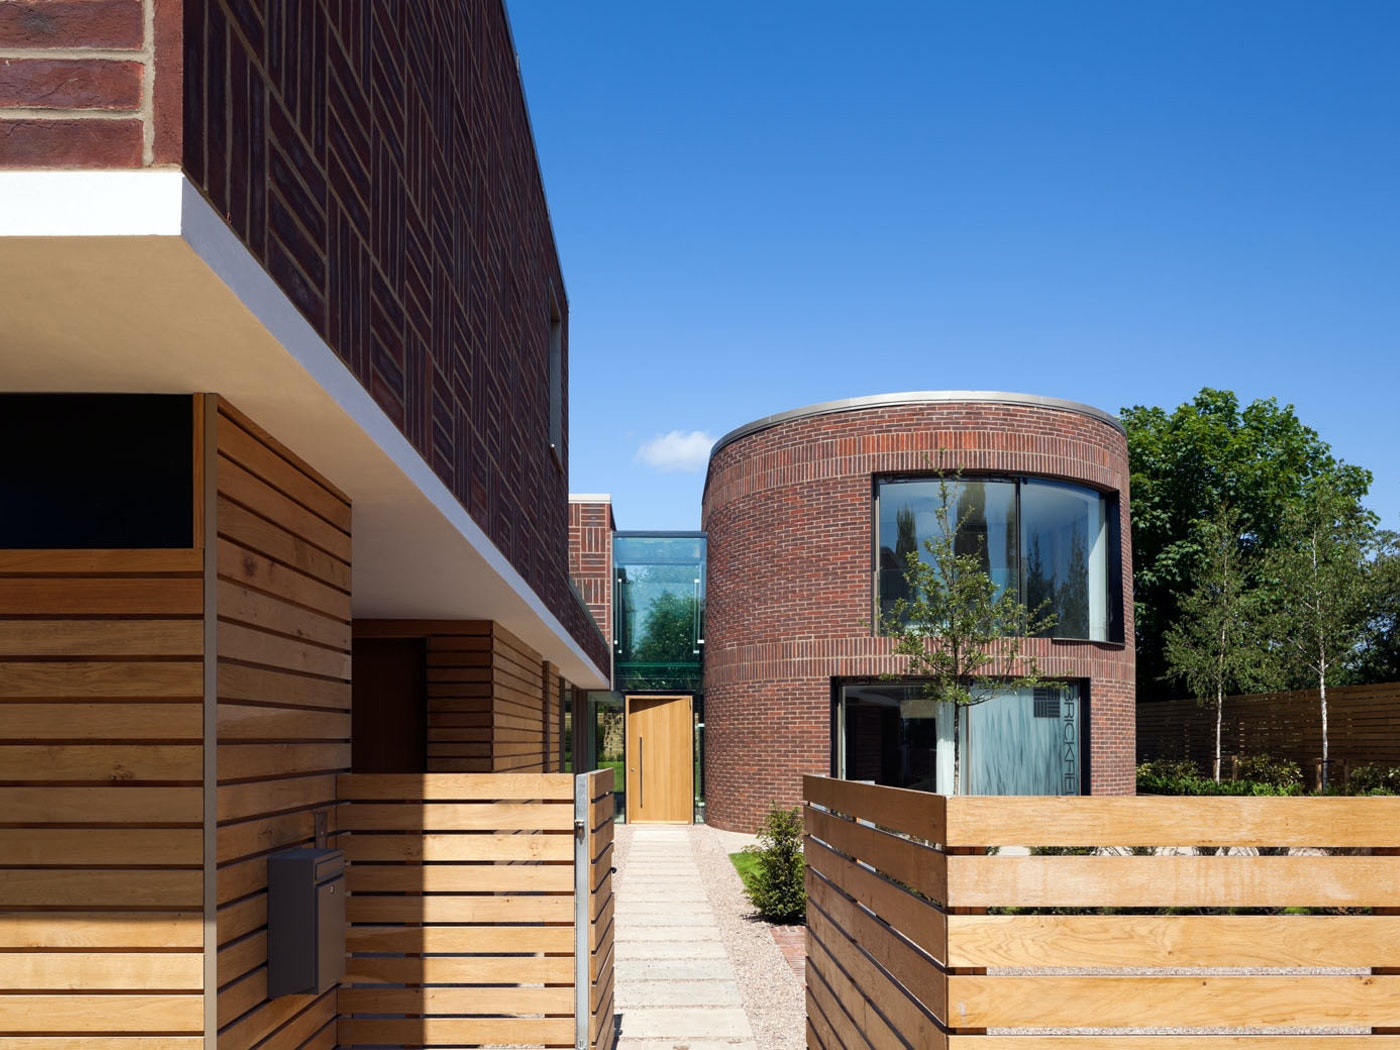 An unusual designed house with circular and square walls with a large door